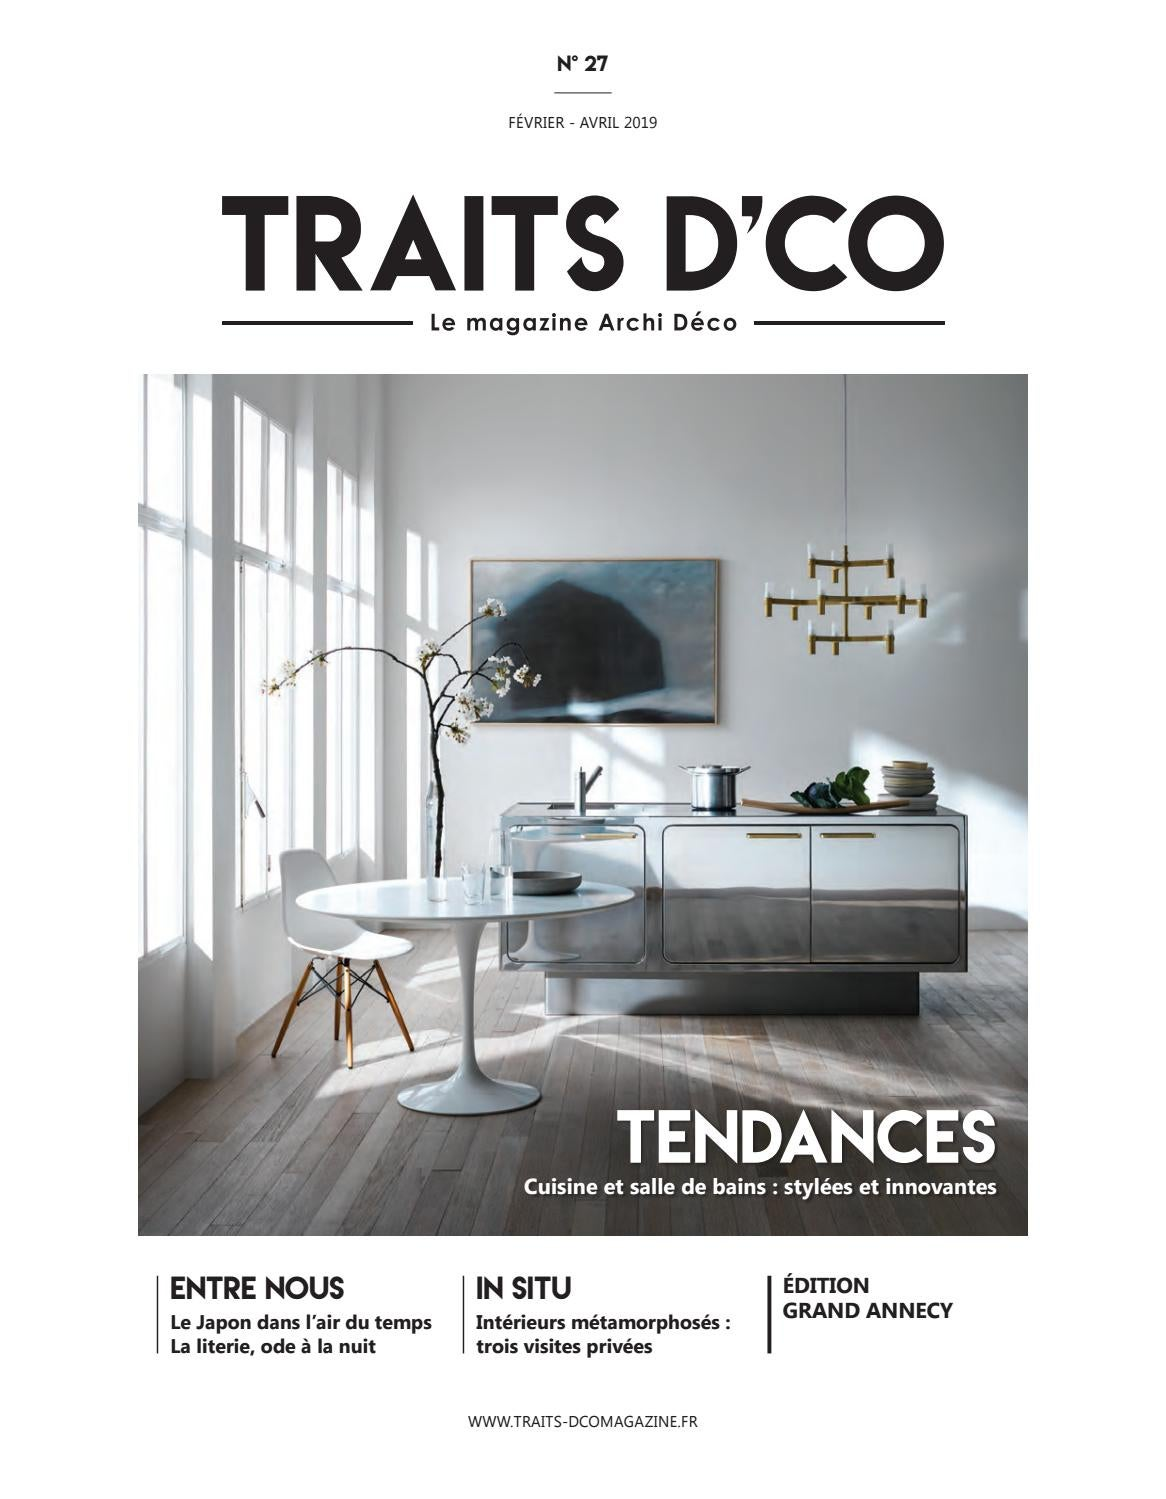 Montecolino Top Deco Traits Dco Magazine Grand Annecy N27